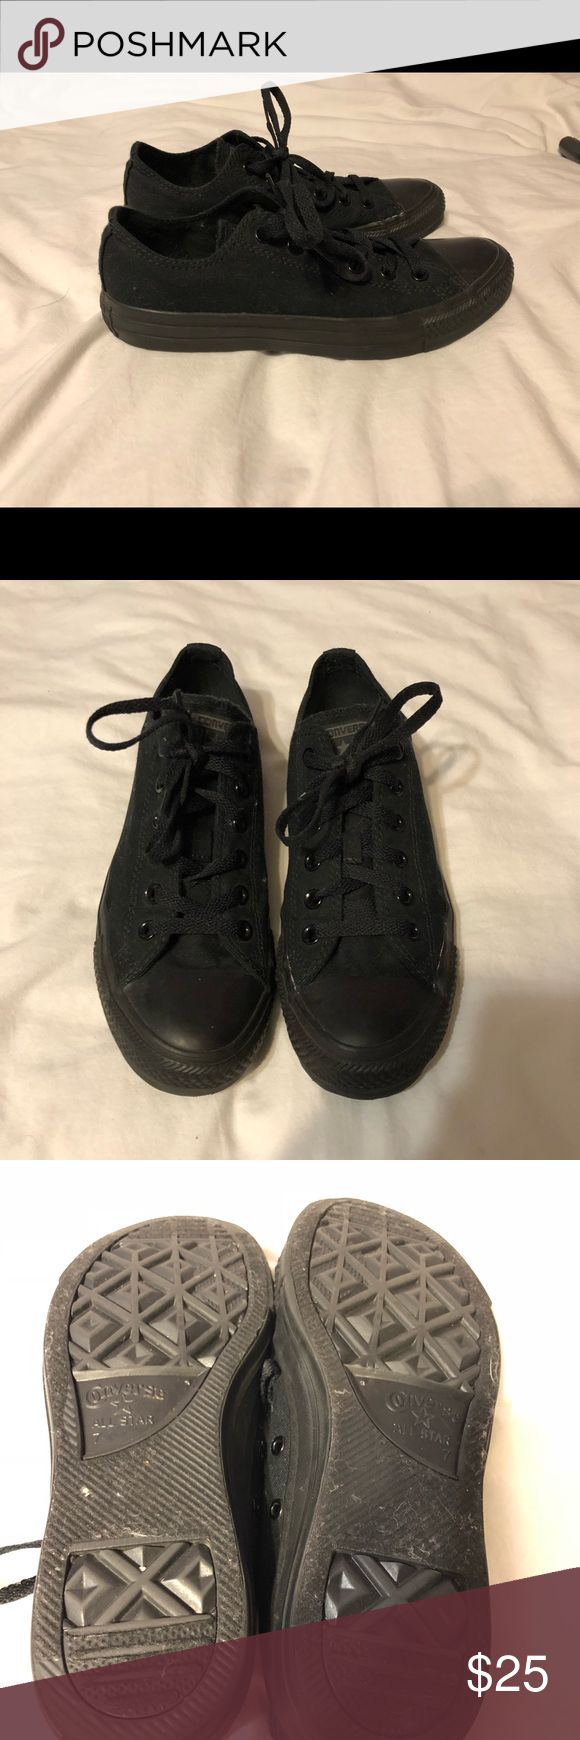 All Black Converse Low Tops Never worn all black converse low tops Converse Shoes Sneakers